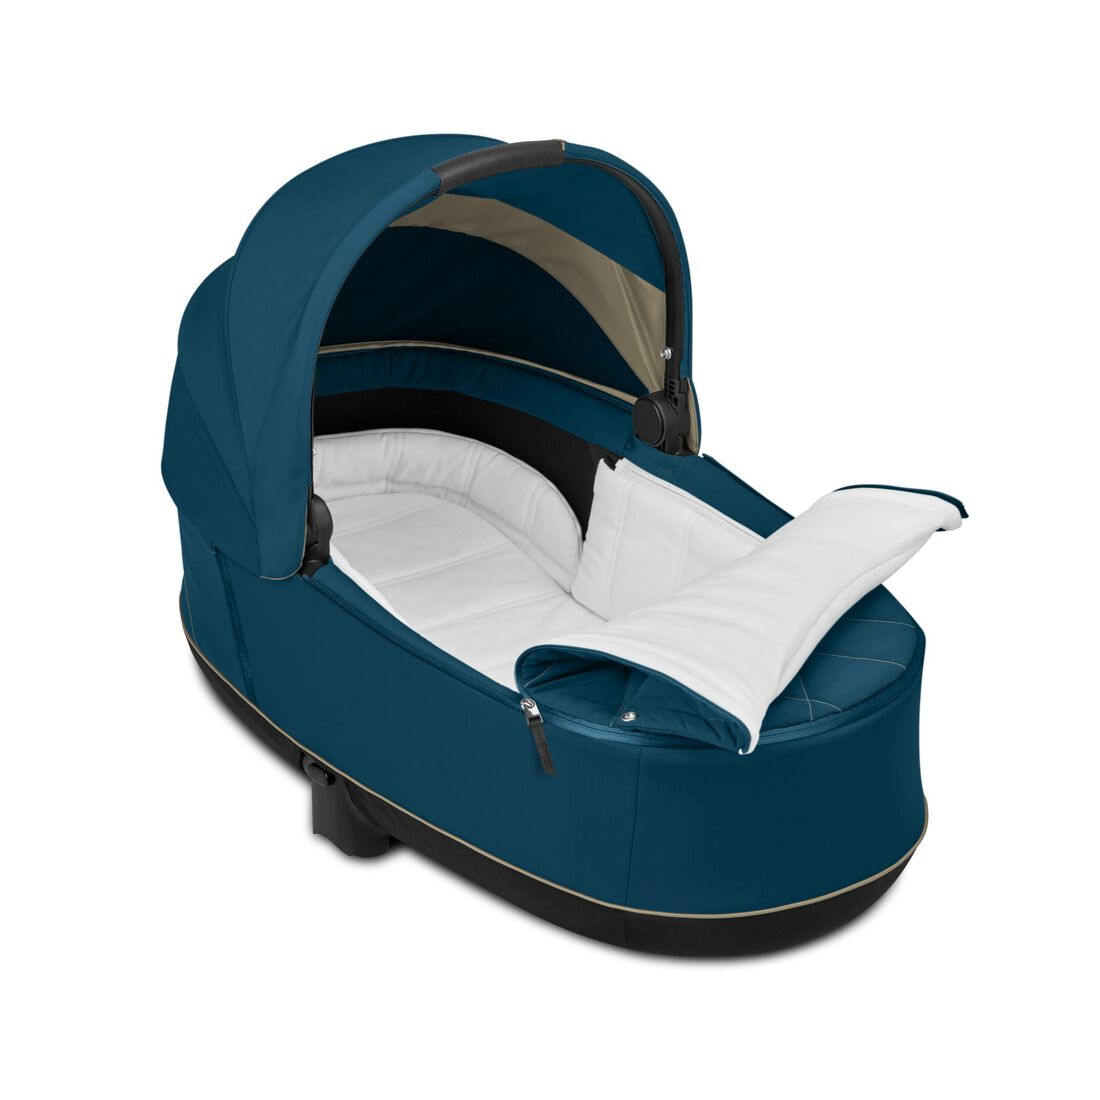 CYBEX Priam Lux Carry Cot - Mountain Blue in Mountain Blue large image number 3